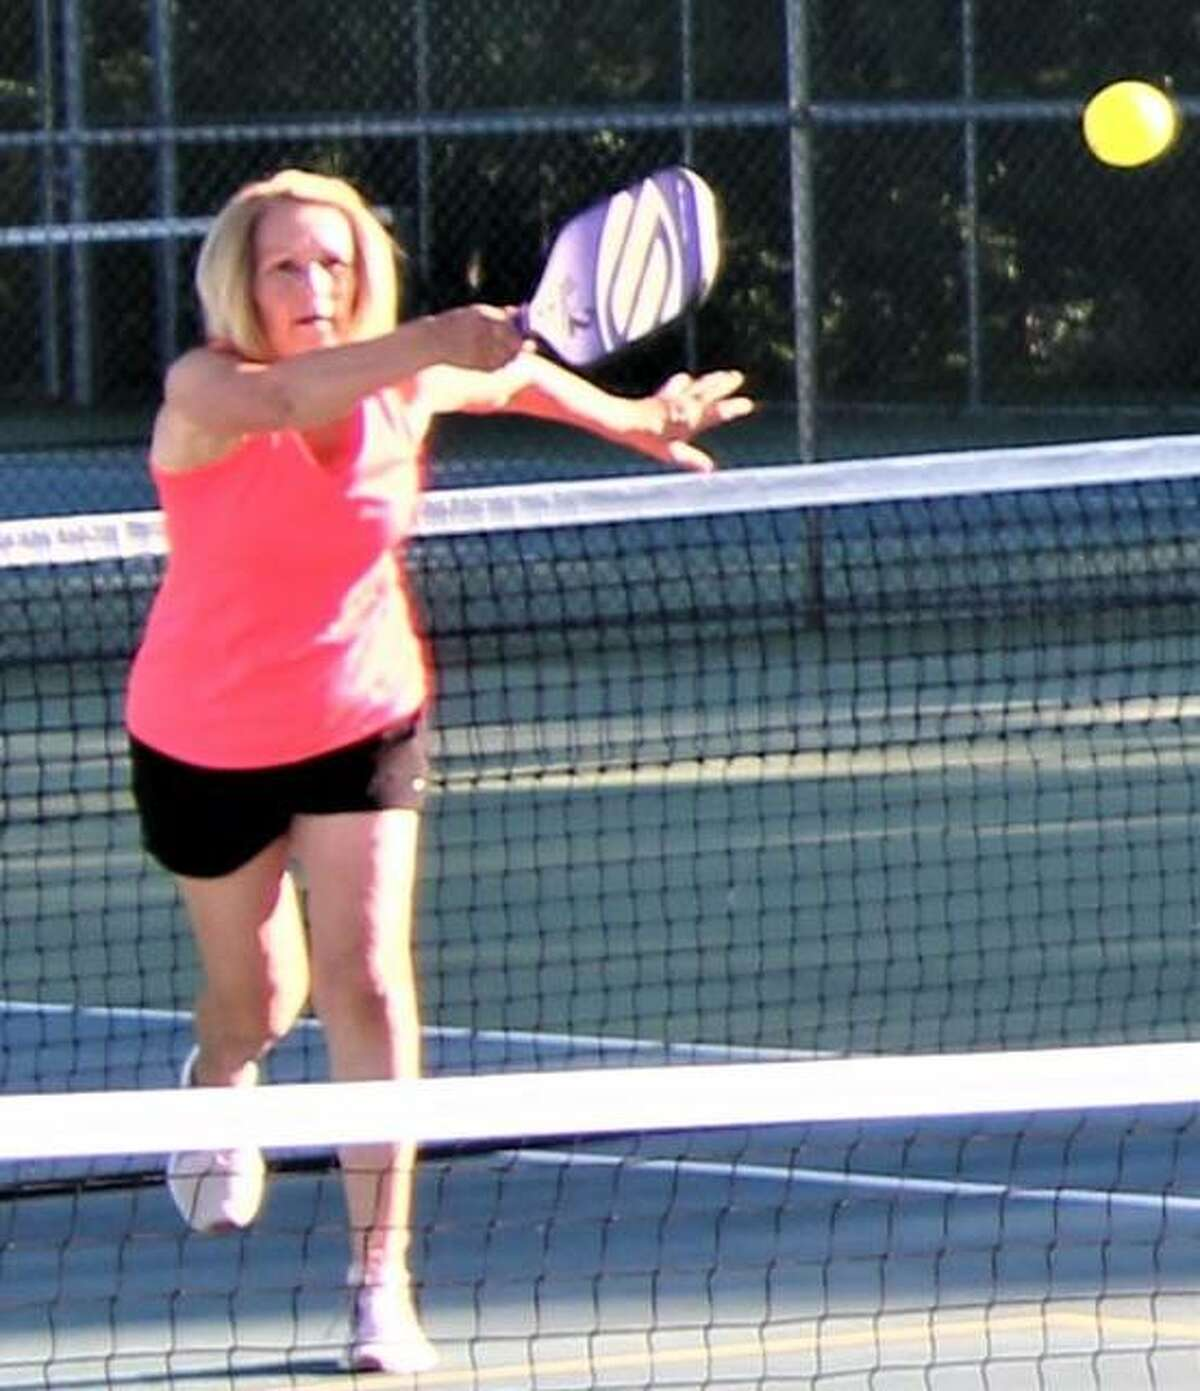 Joan Martin returns a volley during a June 16 pickleball game at Lewis and Clark Community College. Games are held on two of the unlighted tennis courts at the Simpson Tennis Complex.